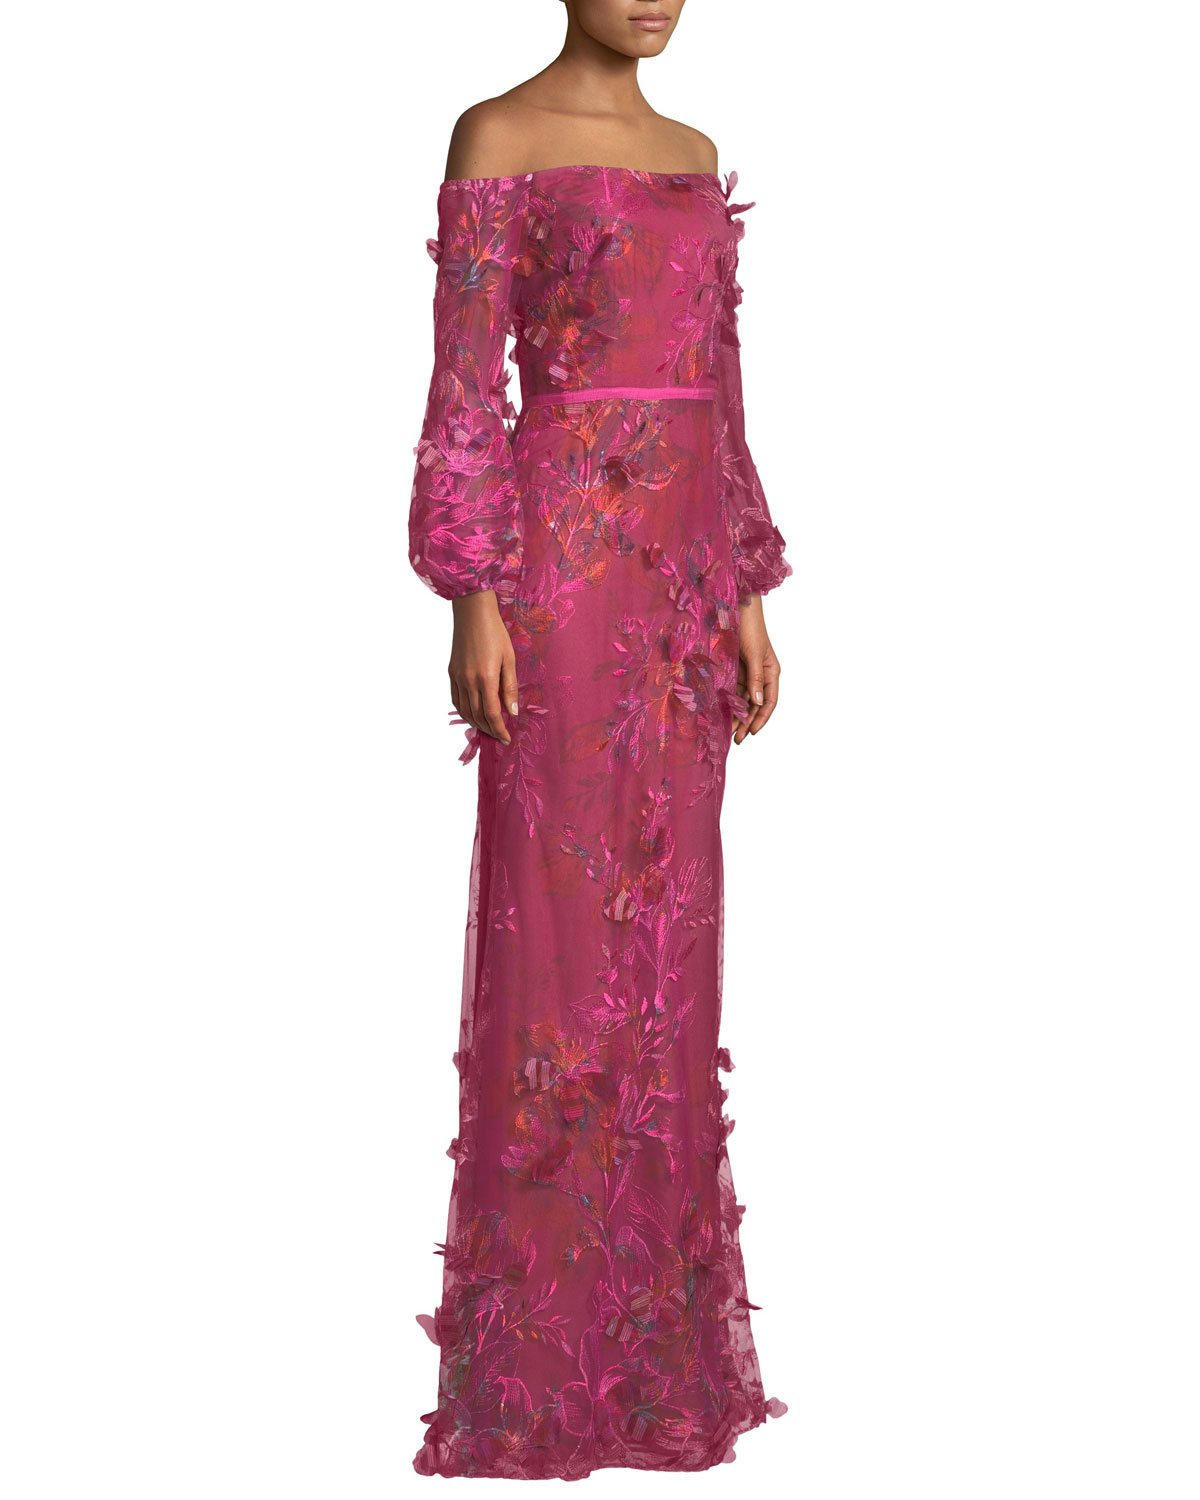 60c1bea00603 Marchesa Notte Off-the-Shoulder Bishop-Sleeve 3D Floral-Embroidered Gown |  Neiman Marcus